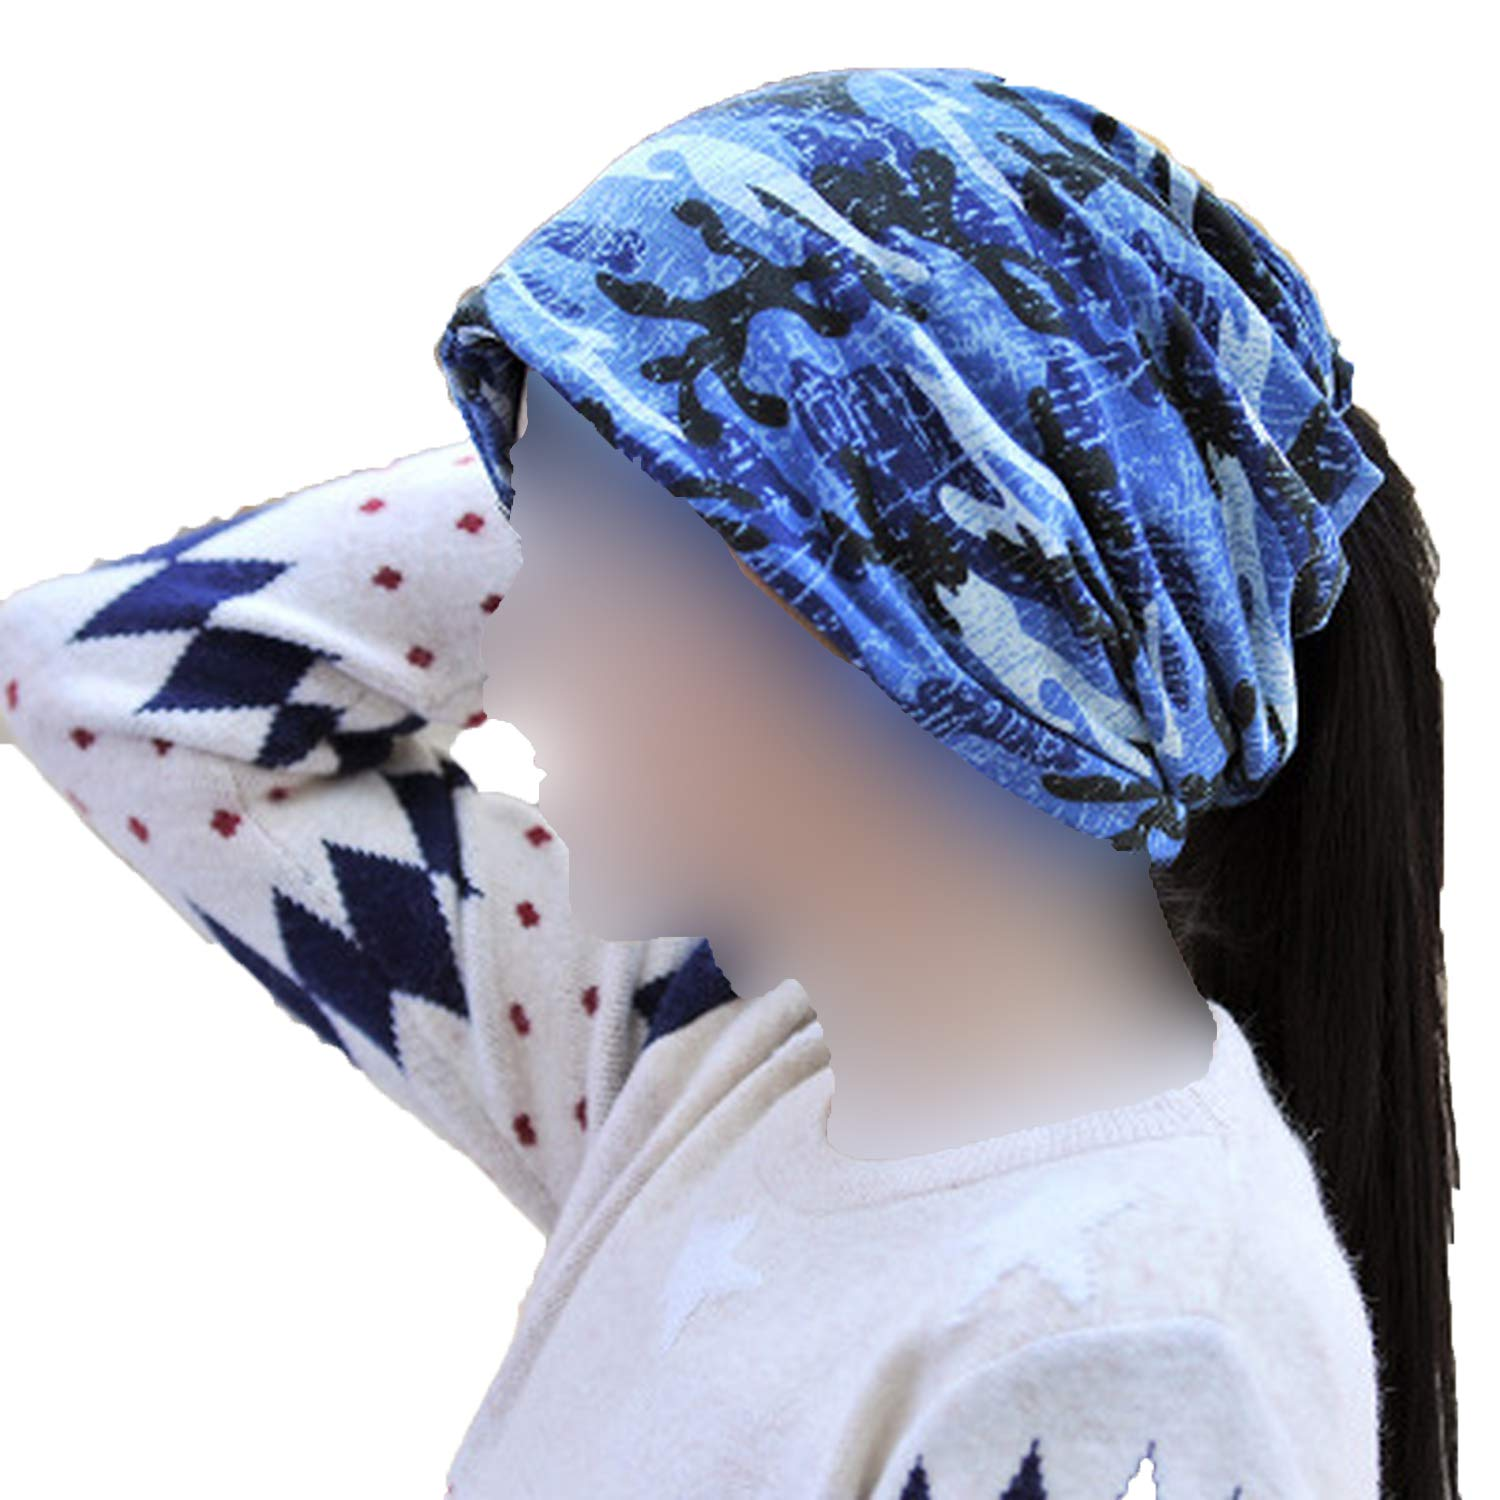 Knitted Scarf /& Winter Hats for Women Men Camouflage Printing Mens Warm Beanies Fashion Hip-Hop Winter Cap